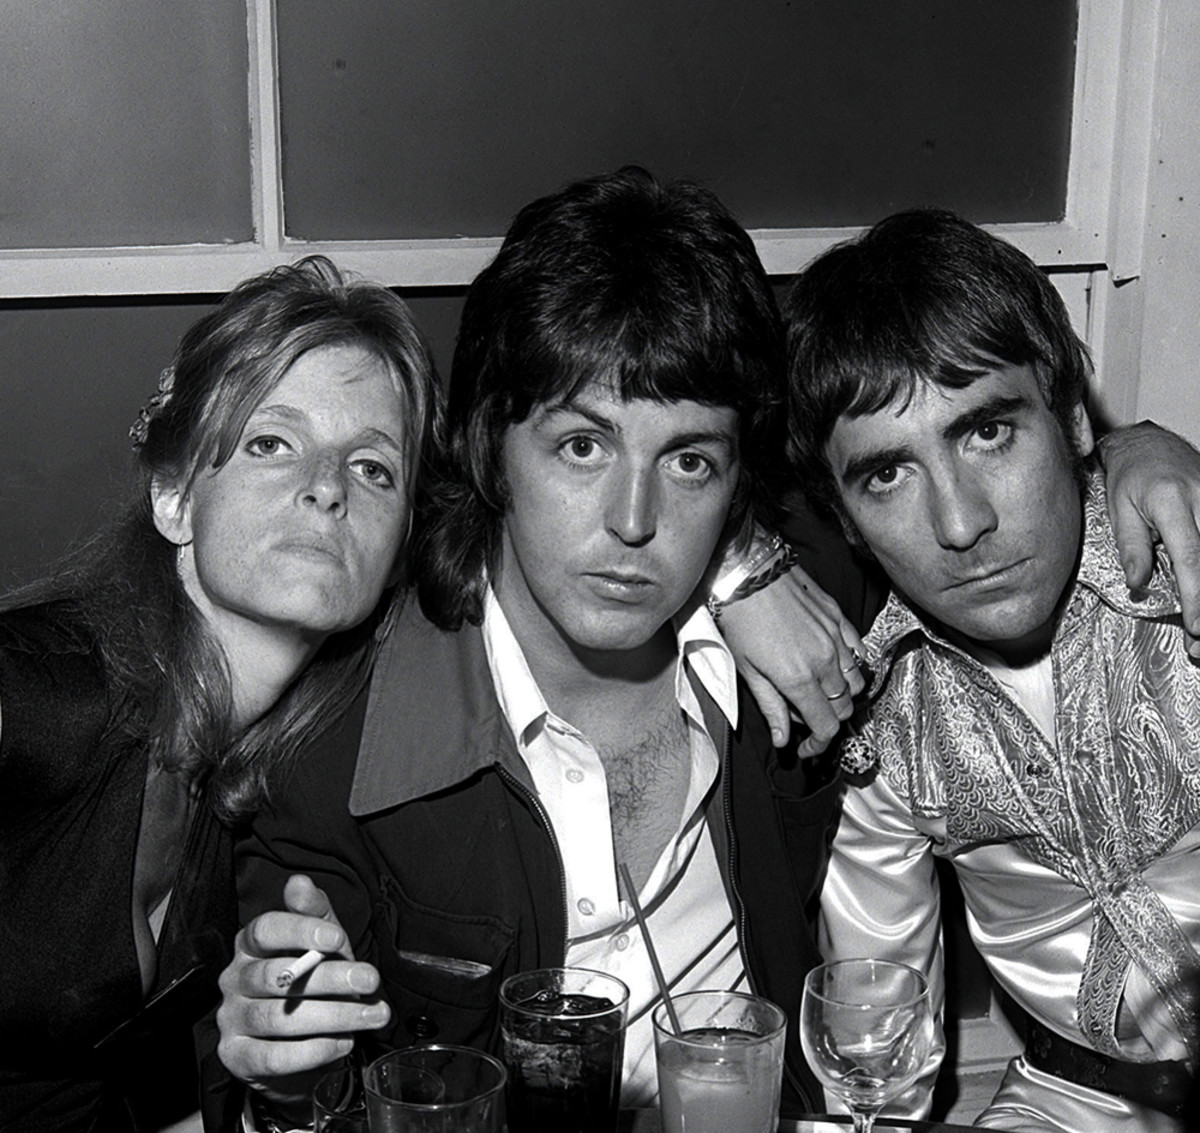 Linda, Paul and Keith